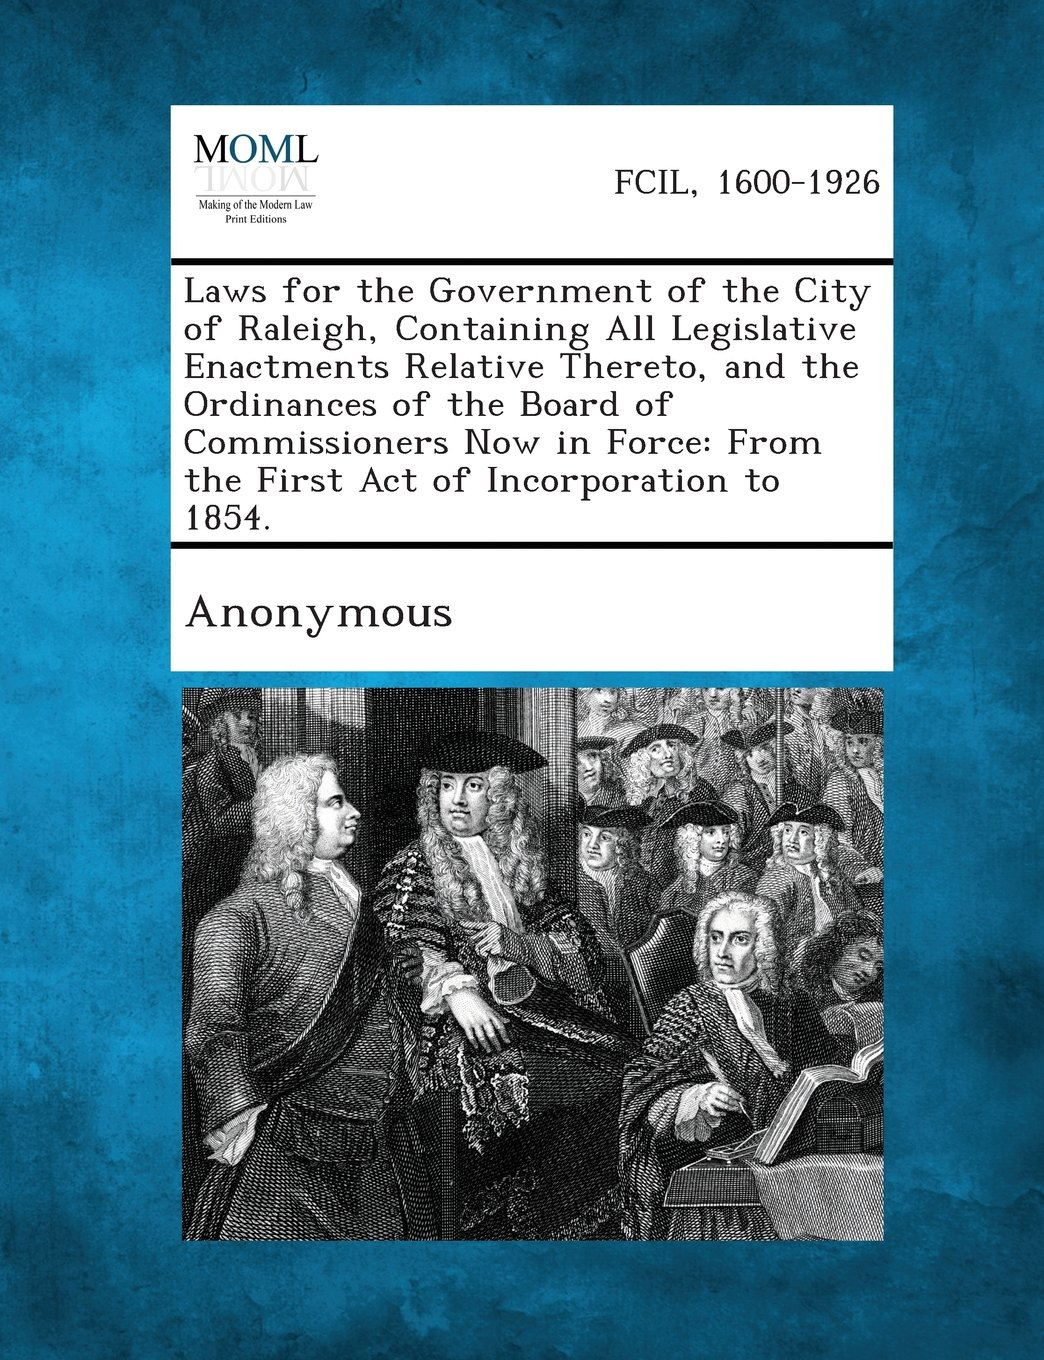 Download Laws for the Government of the City of Raleigh, Containing All Legislative Enactments Relative Thereto, and the Ordinances of the Board of ... From the First Act of Incorporation to 1854. pdf